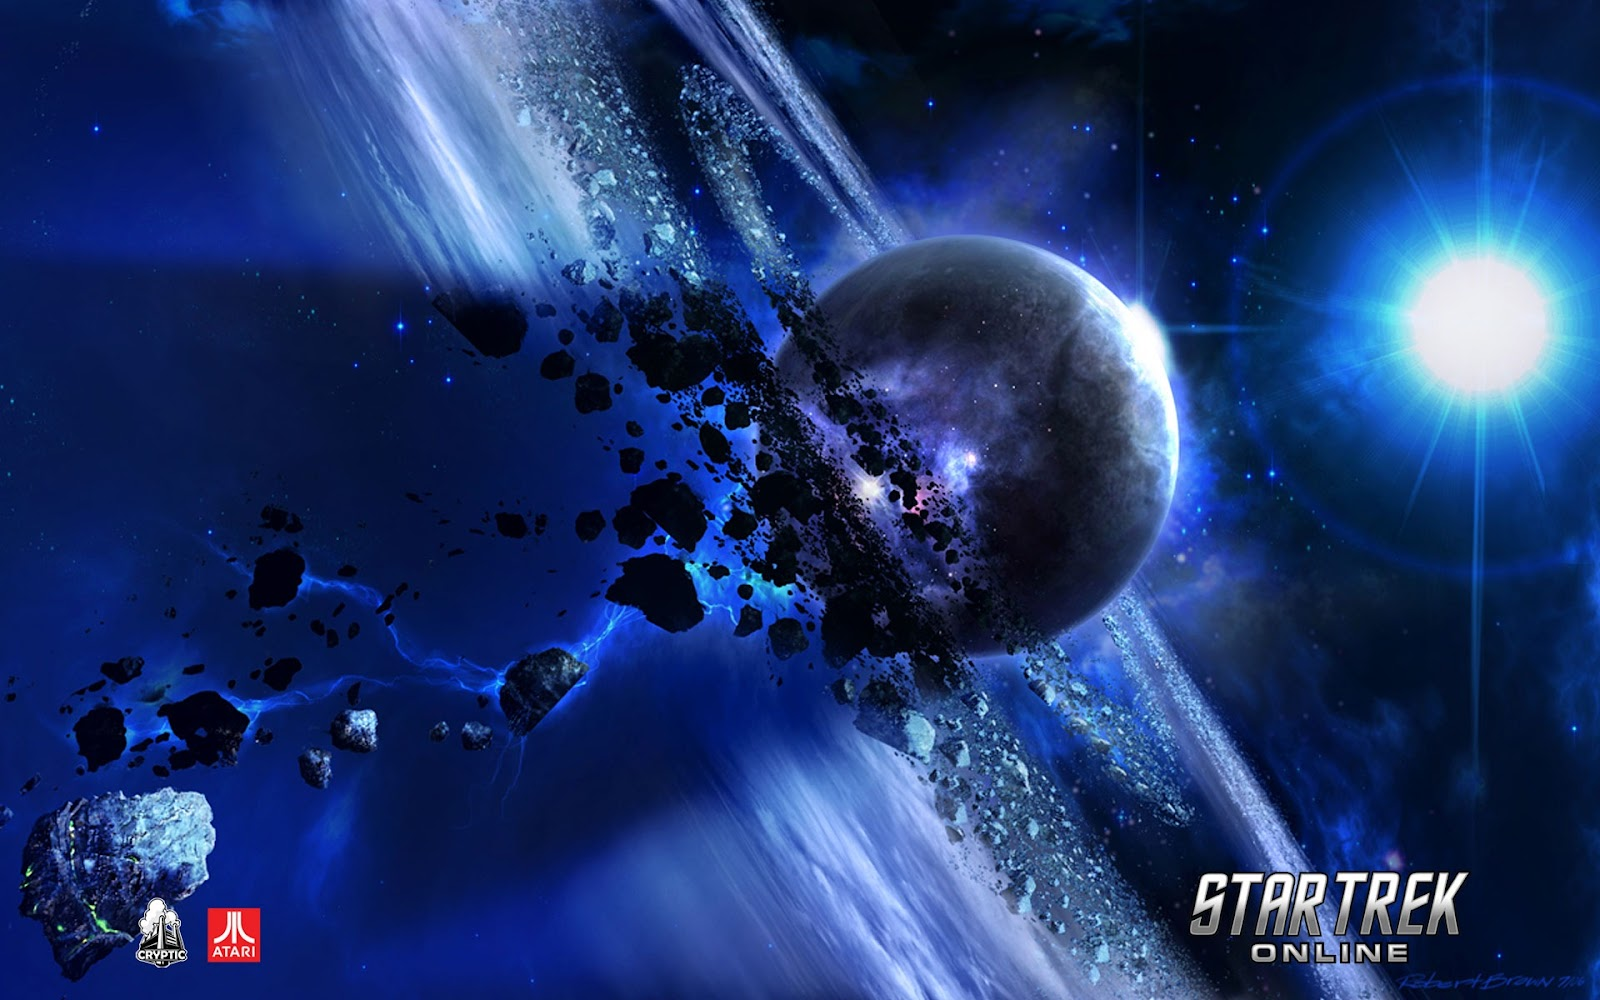 Gaming Wallpapers and Theme for Windows 7 and Windows 8 - extreme 7